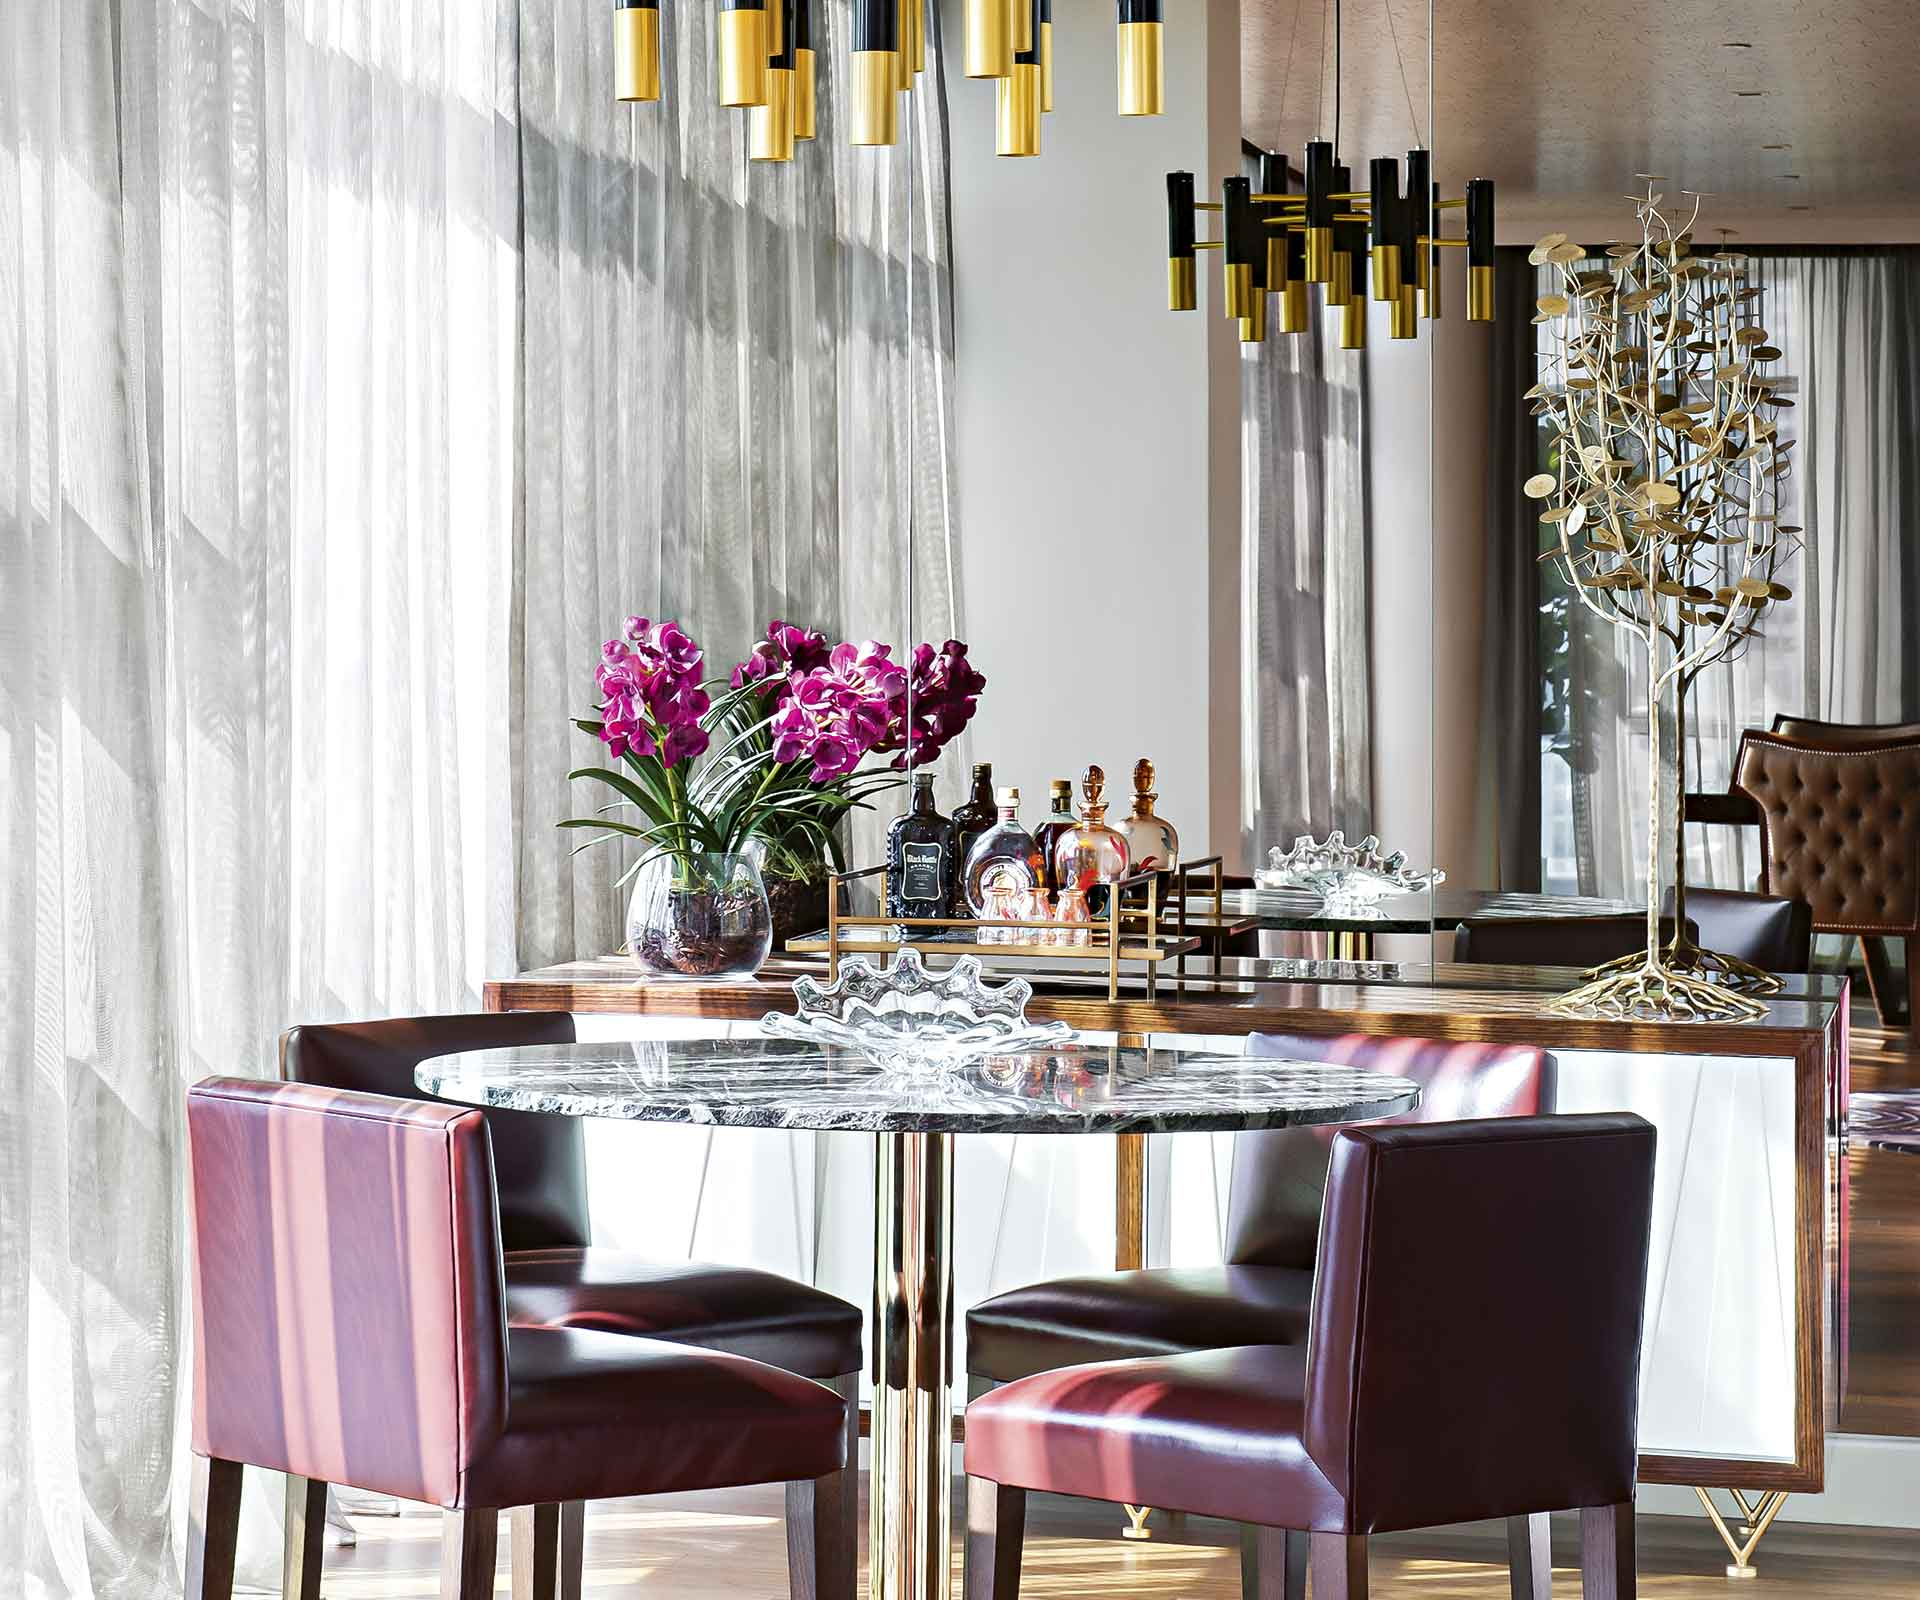 15 unique mirror styles to elevate your home decor | Inside Out